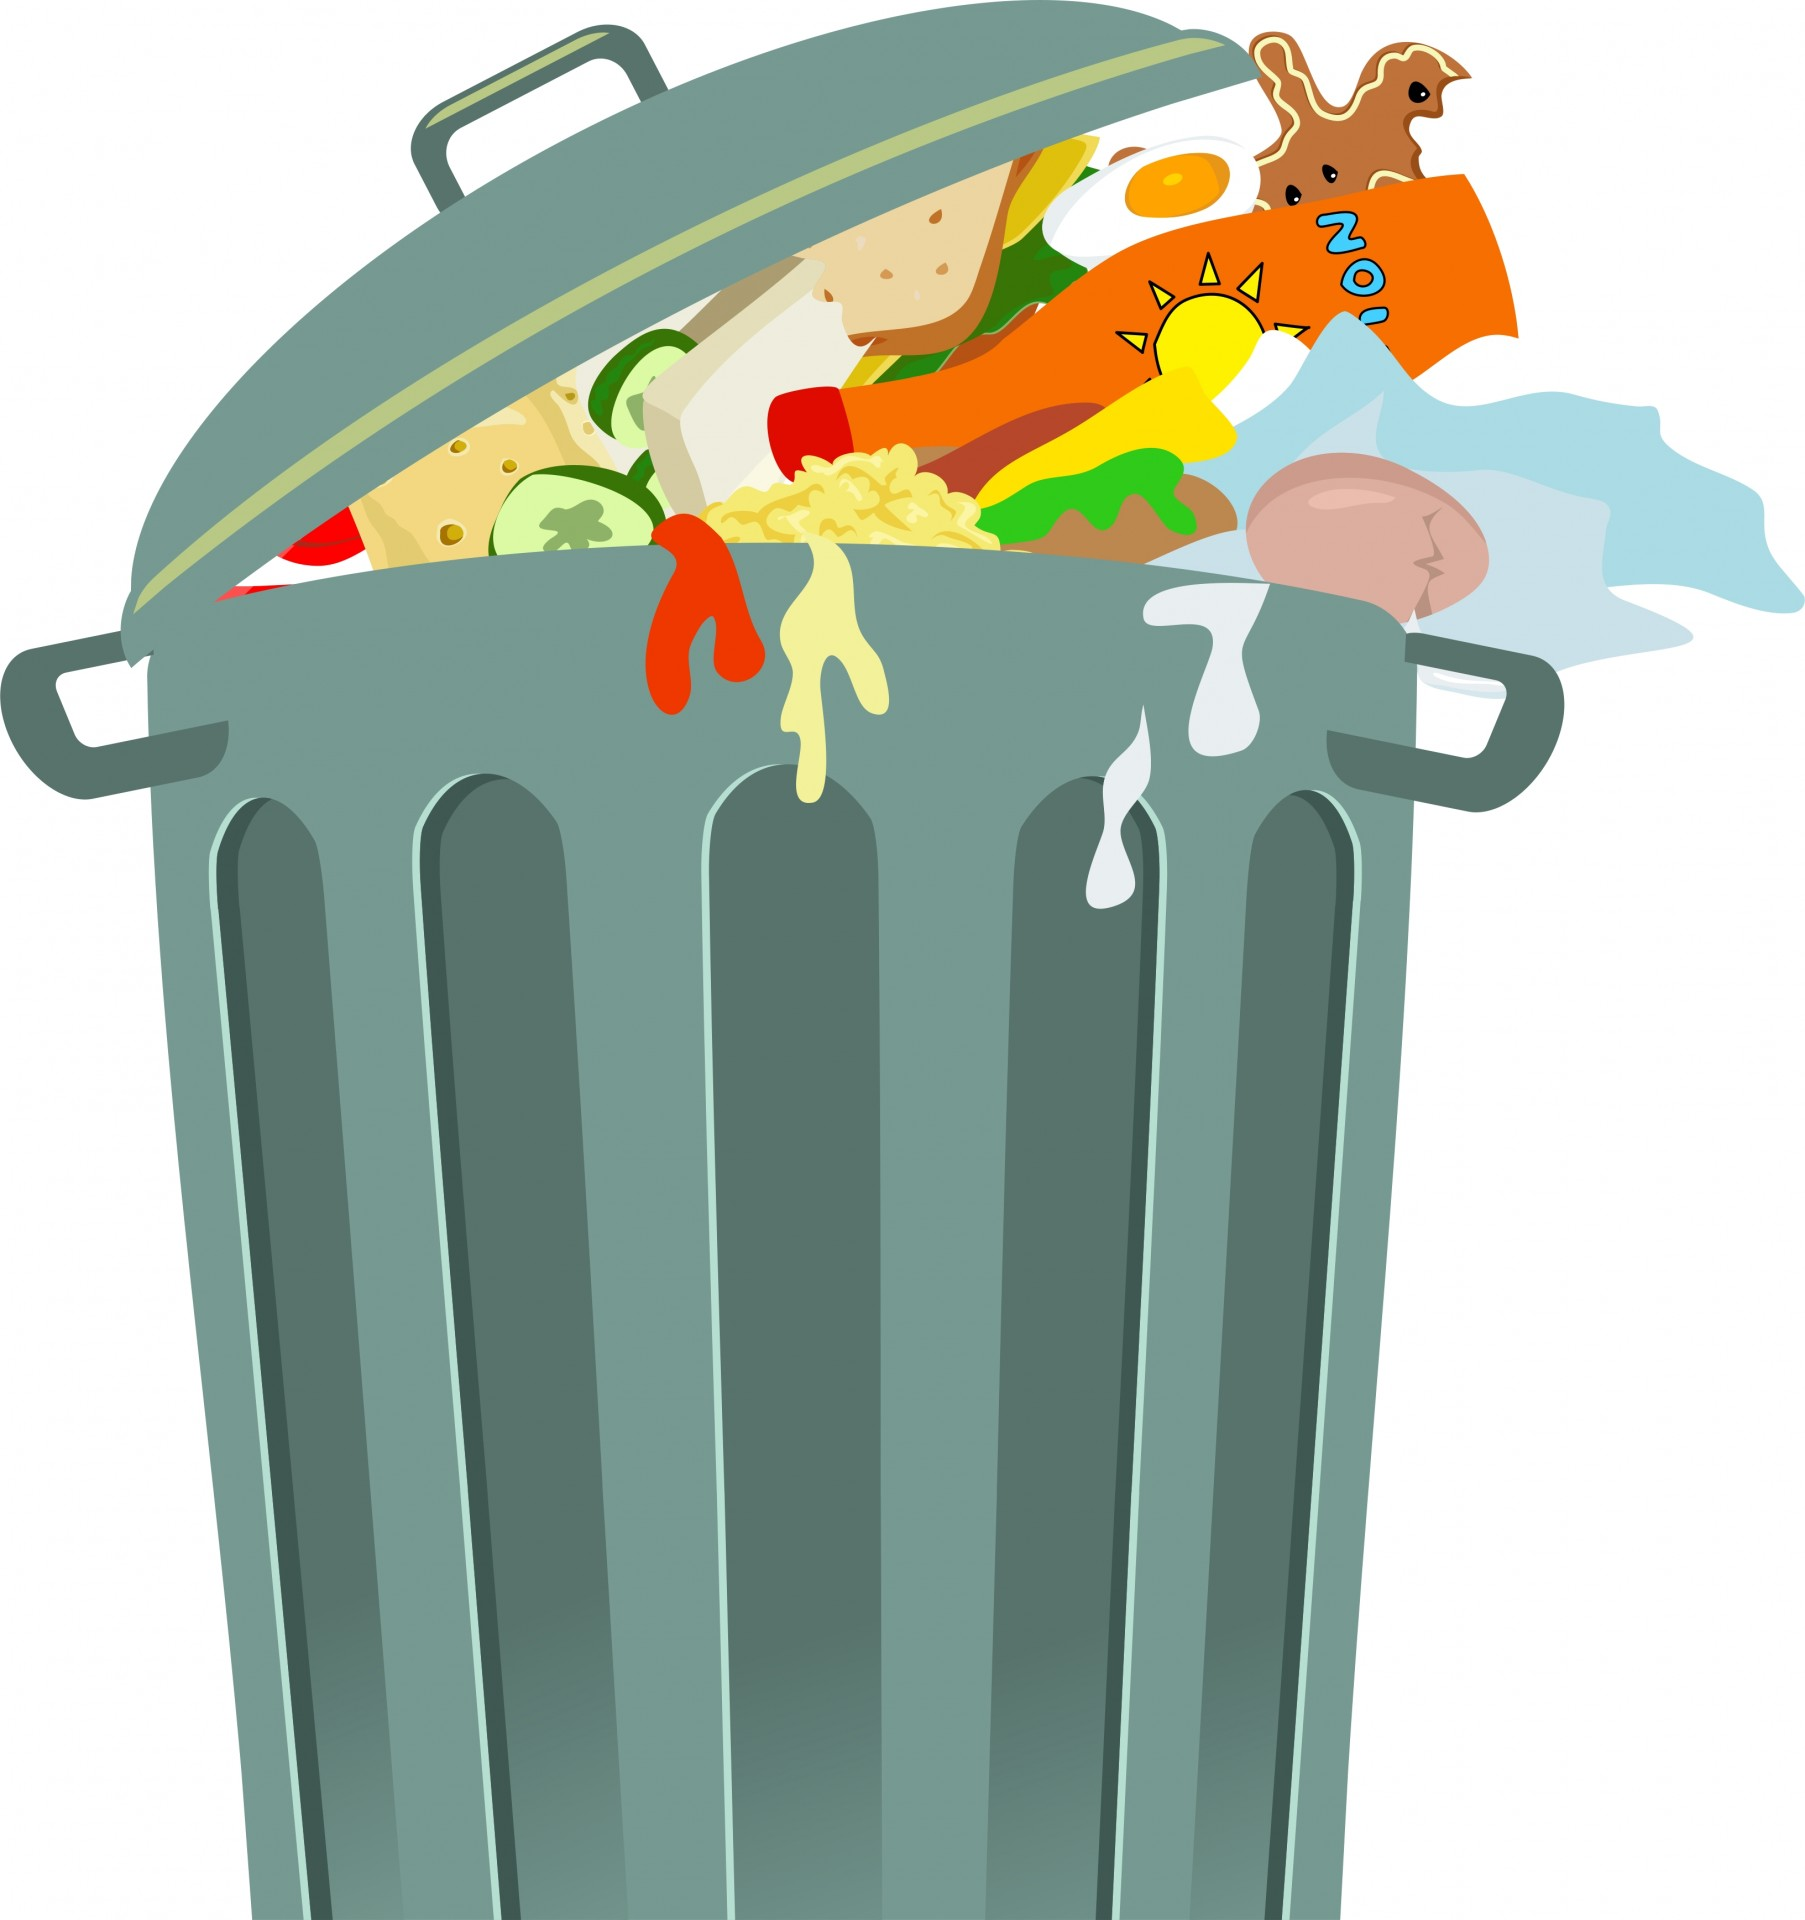 Can clipart clip art. Trash free stock photo